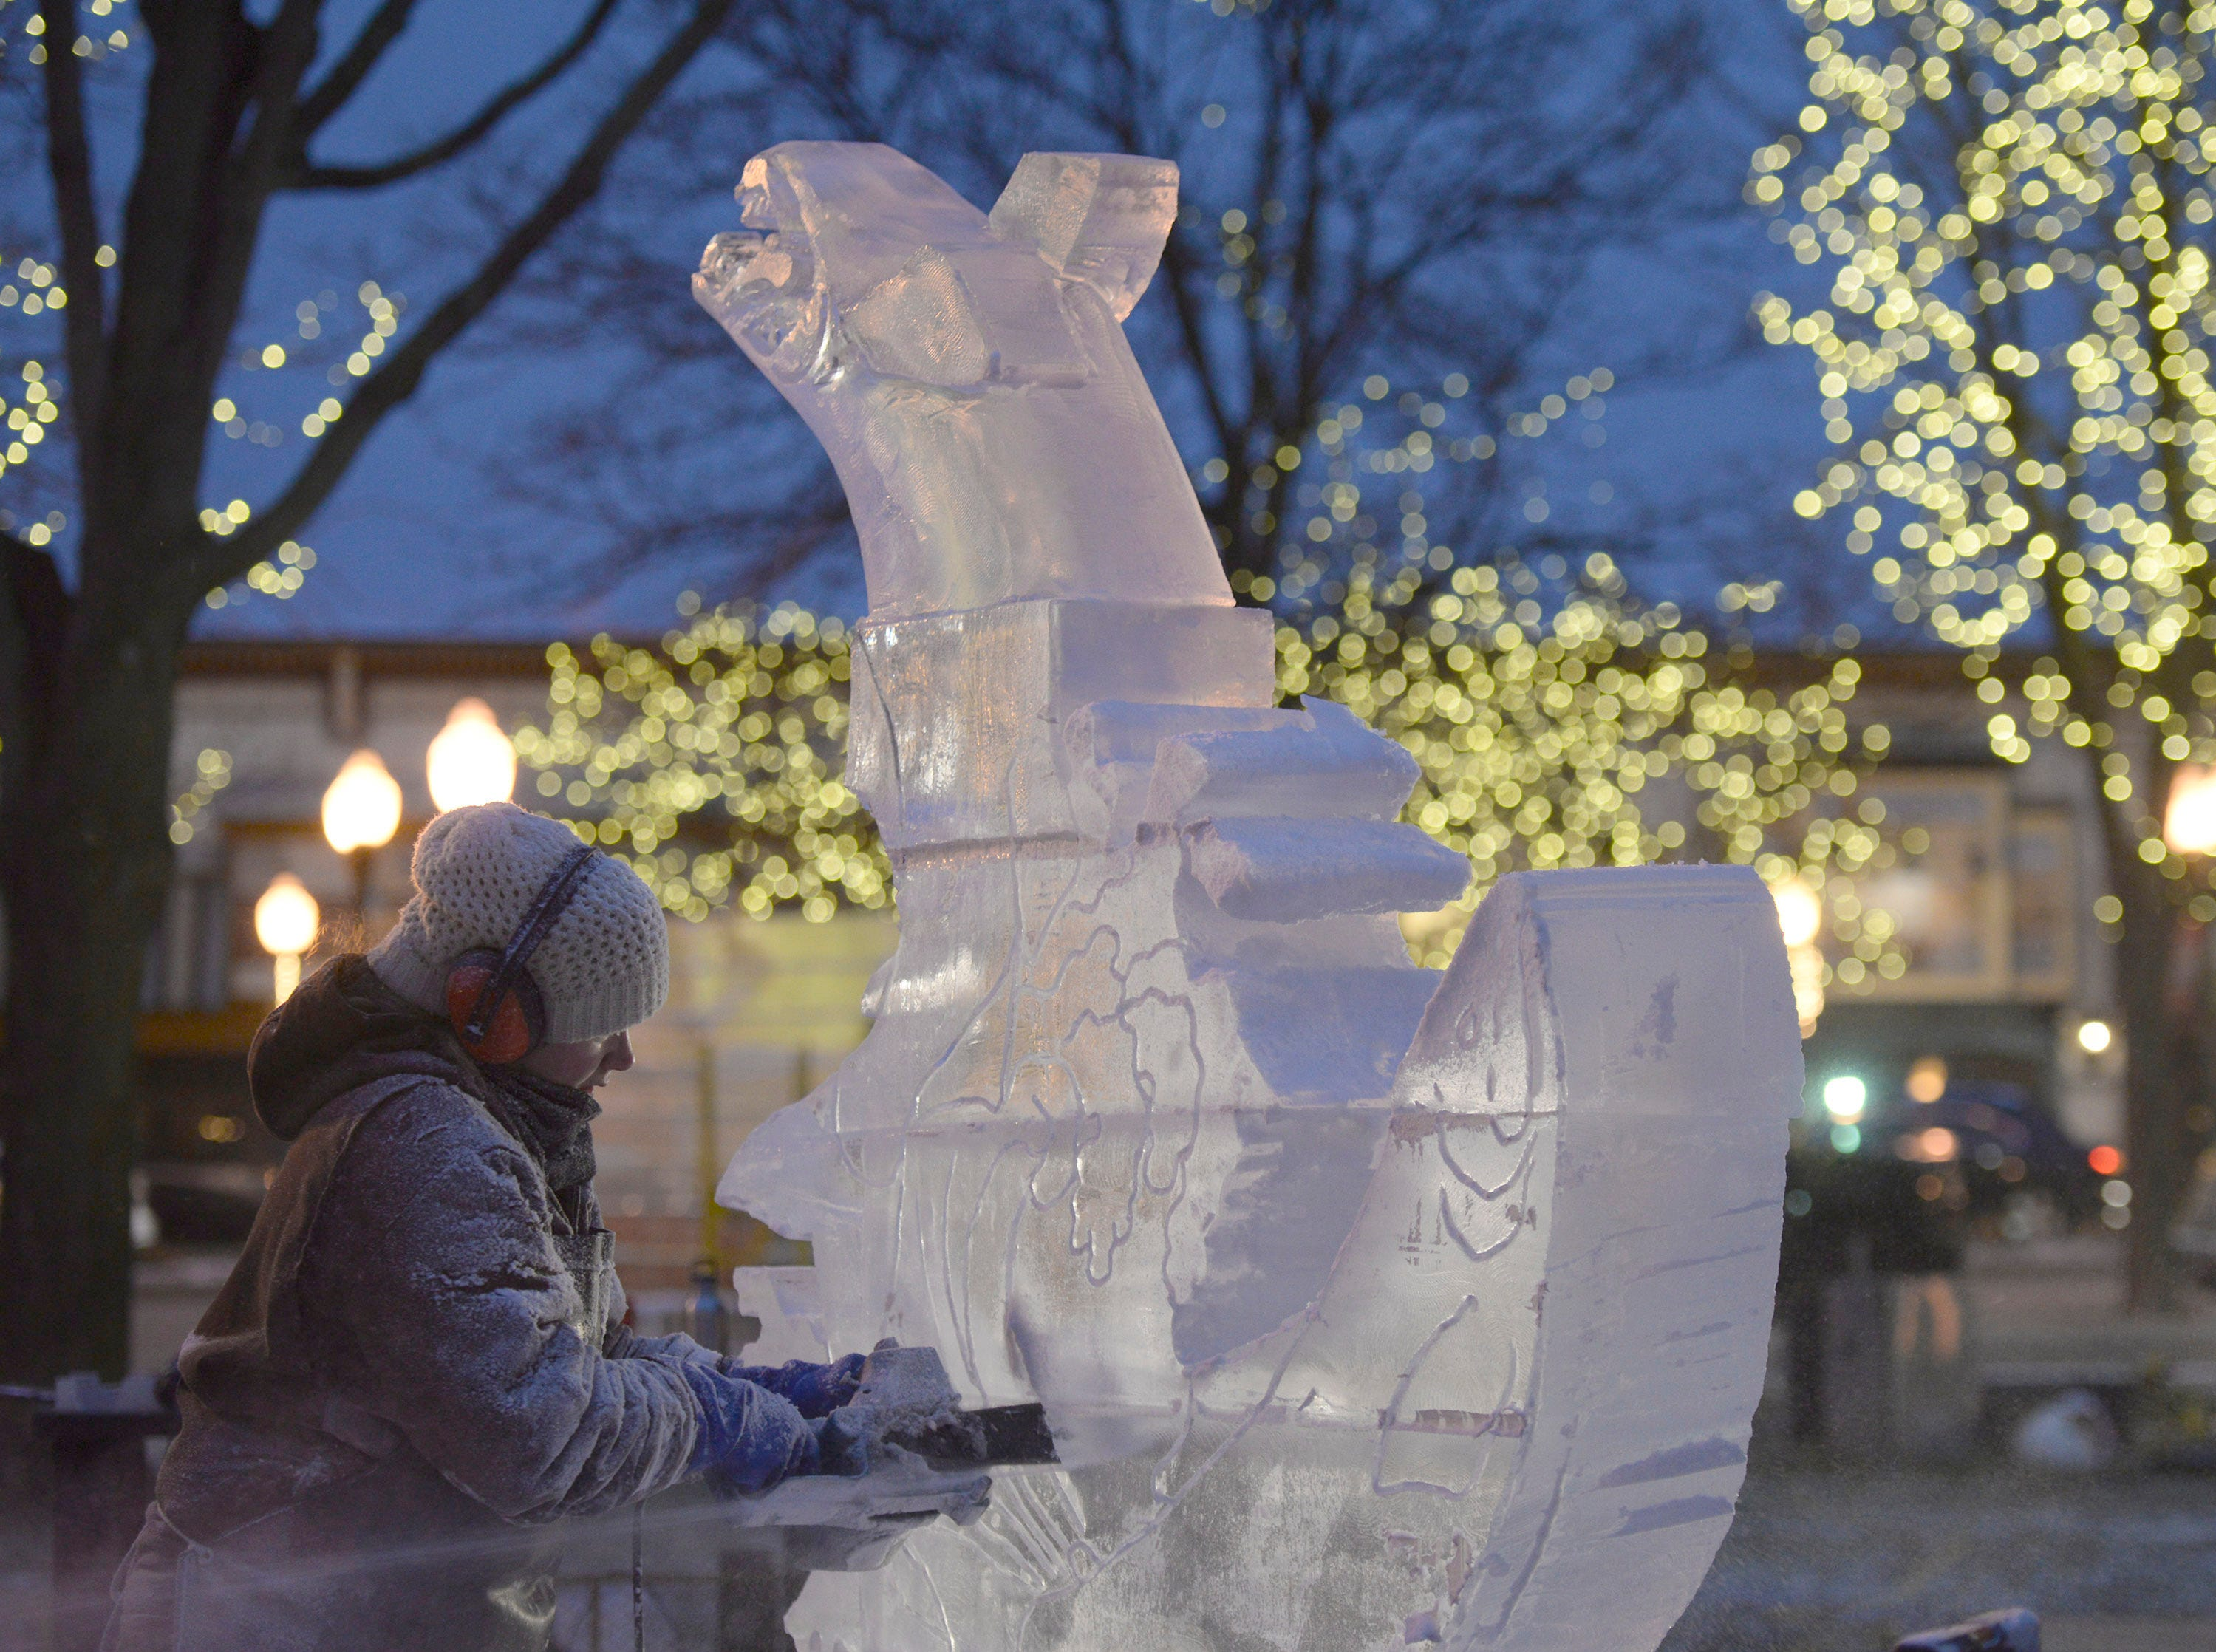 As Lauren Kaplar continues to carve into the evening, details emerge of the two salmon from the lights surrounding Kellogg Park in downtown Plymouth.